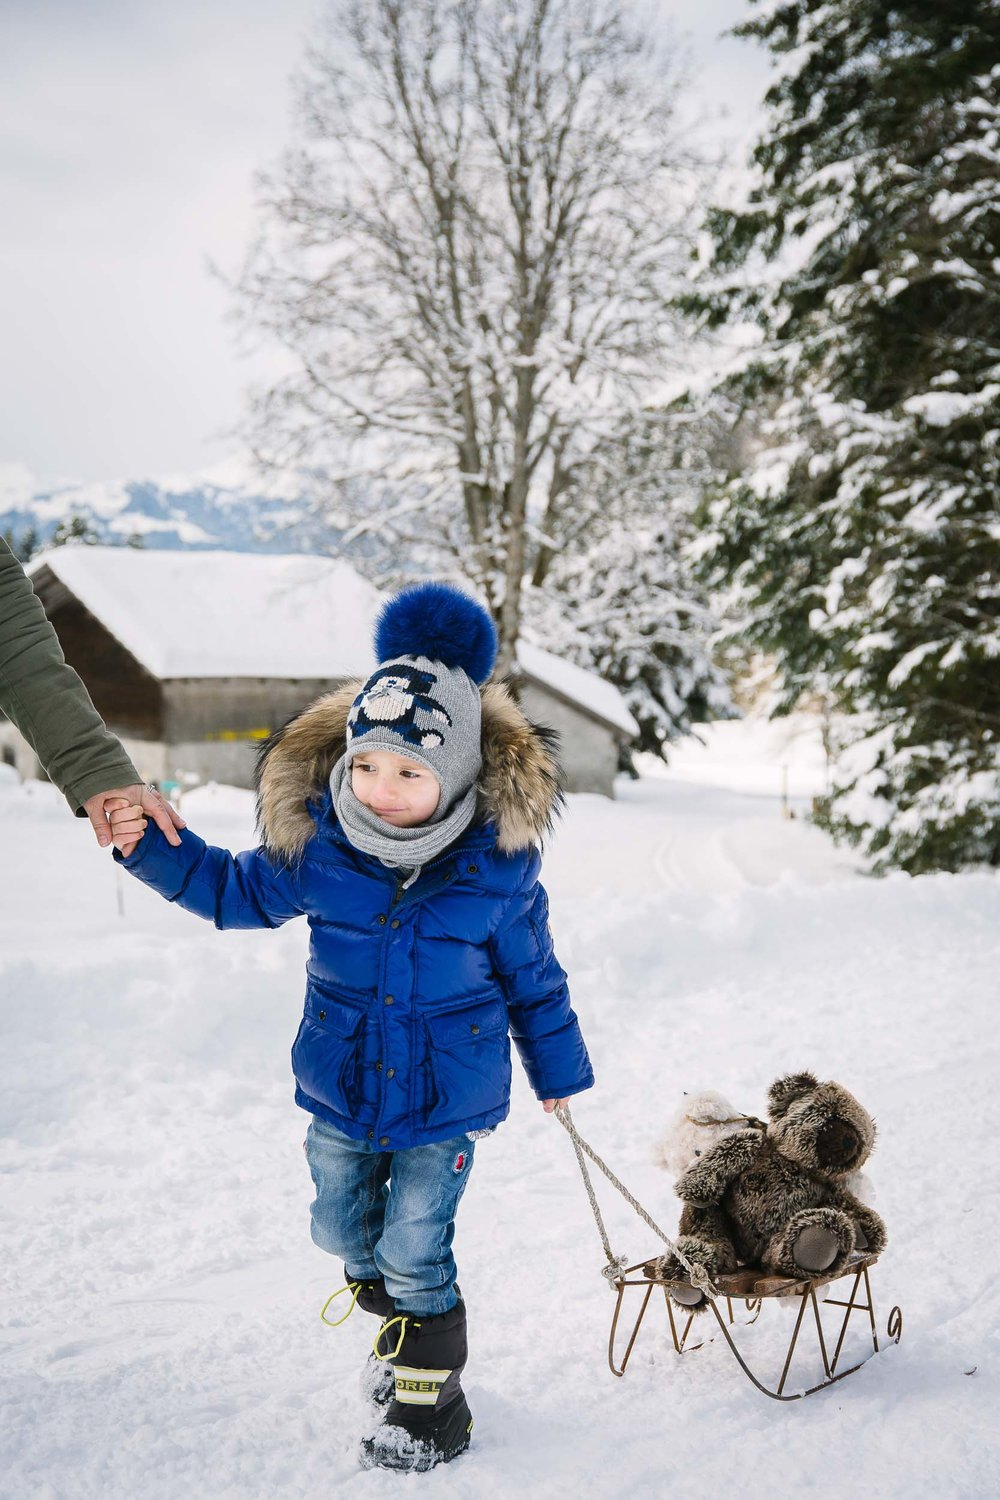 A little boy sledges with his parents and teddy in Solalex, Switzerland.